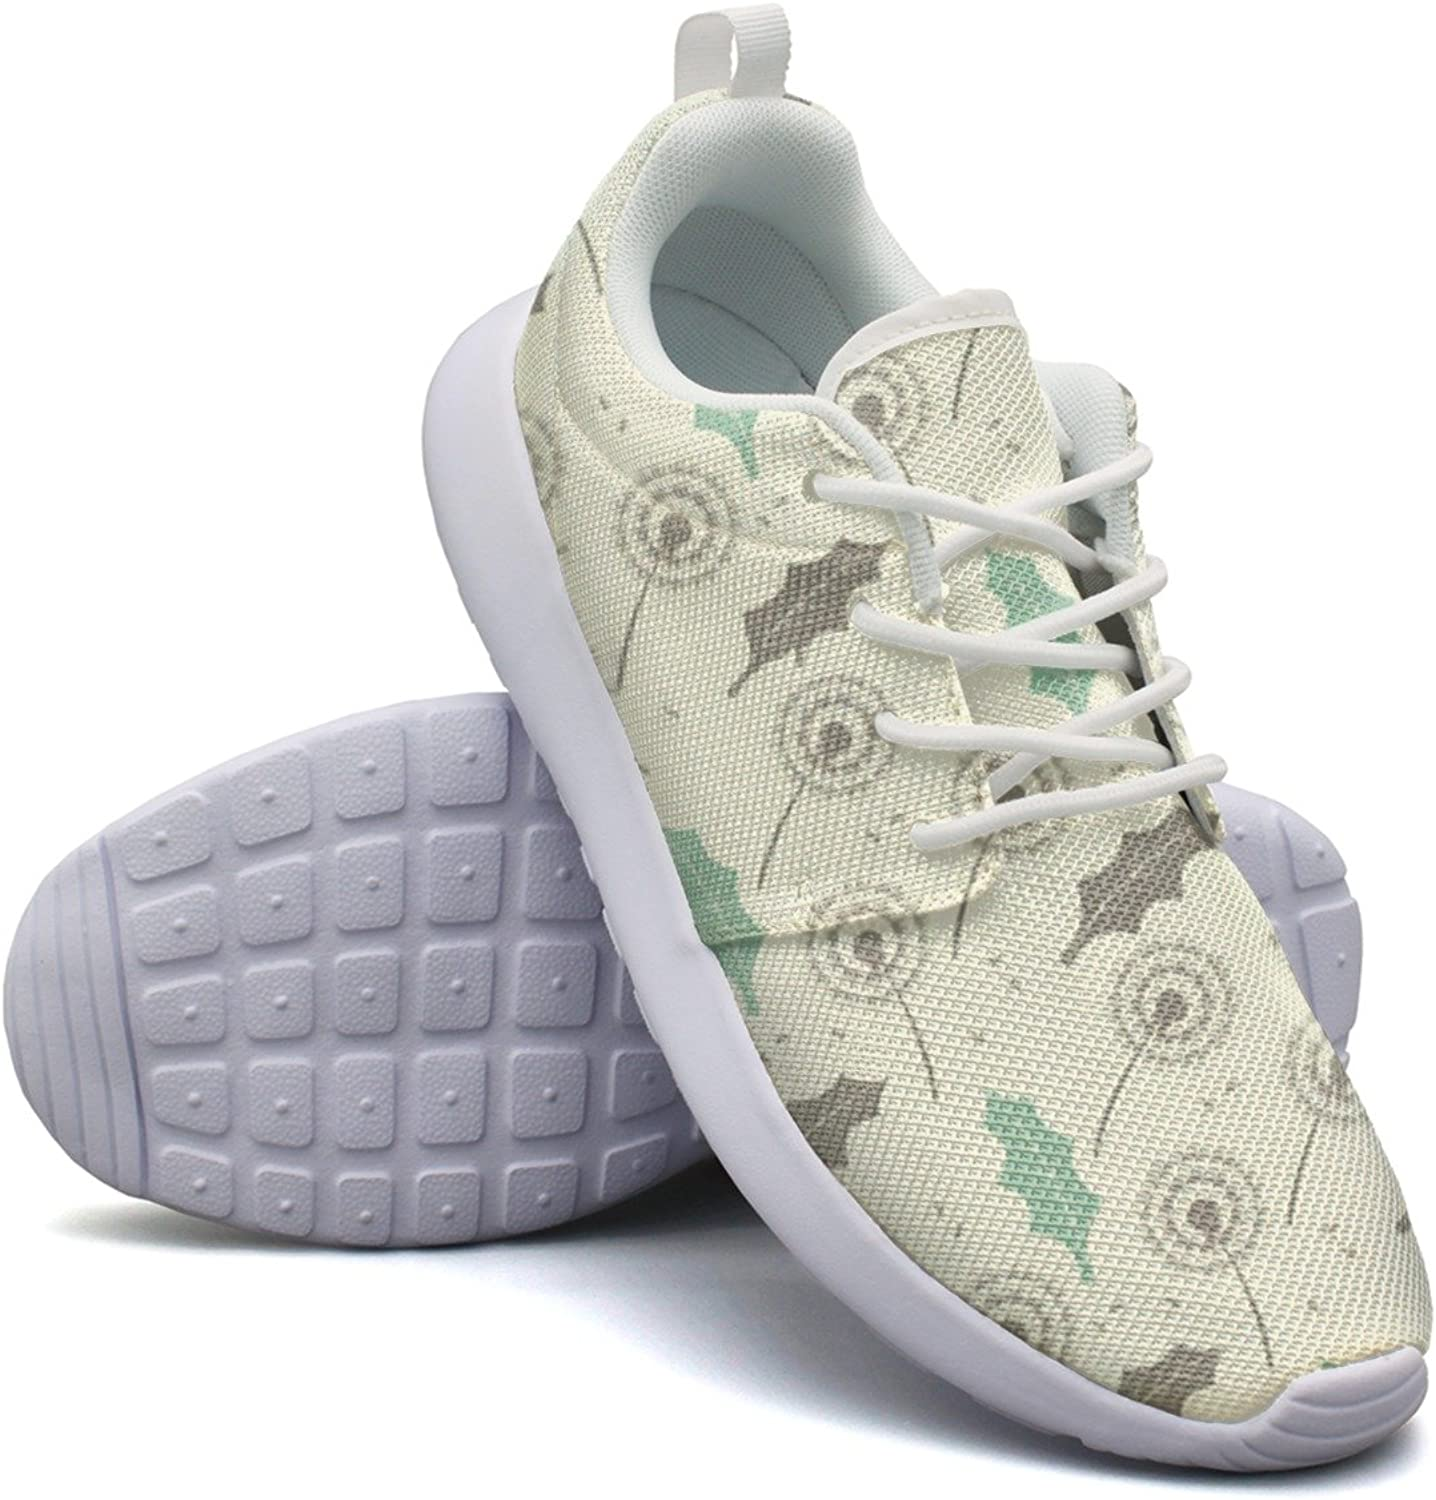 Dandelion Leafs And Seeds Woman's Neutral Running shoes Navy Mini